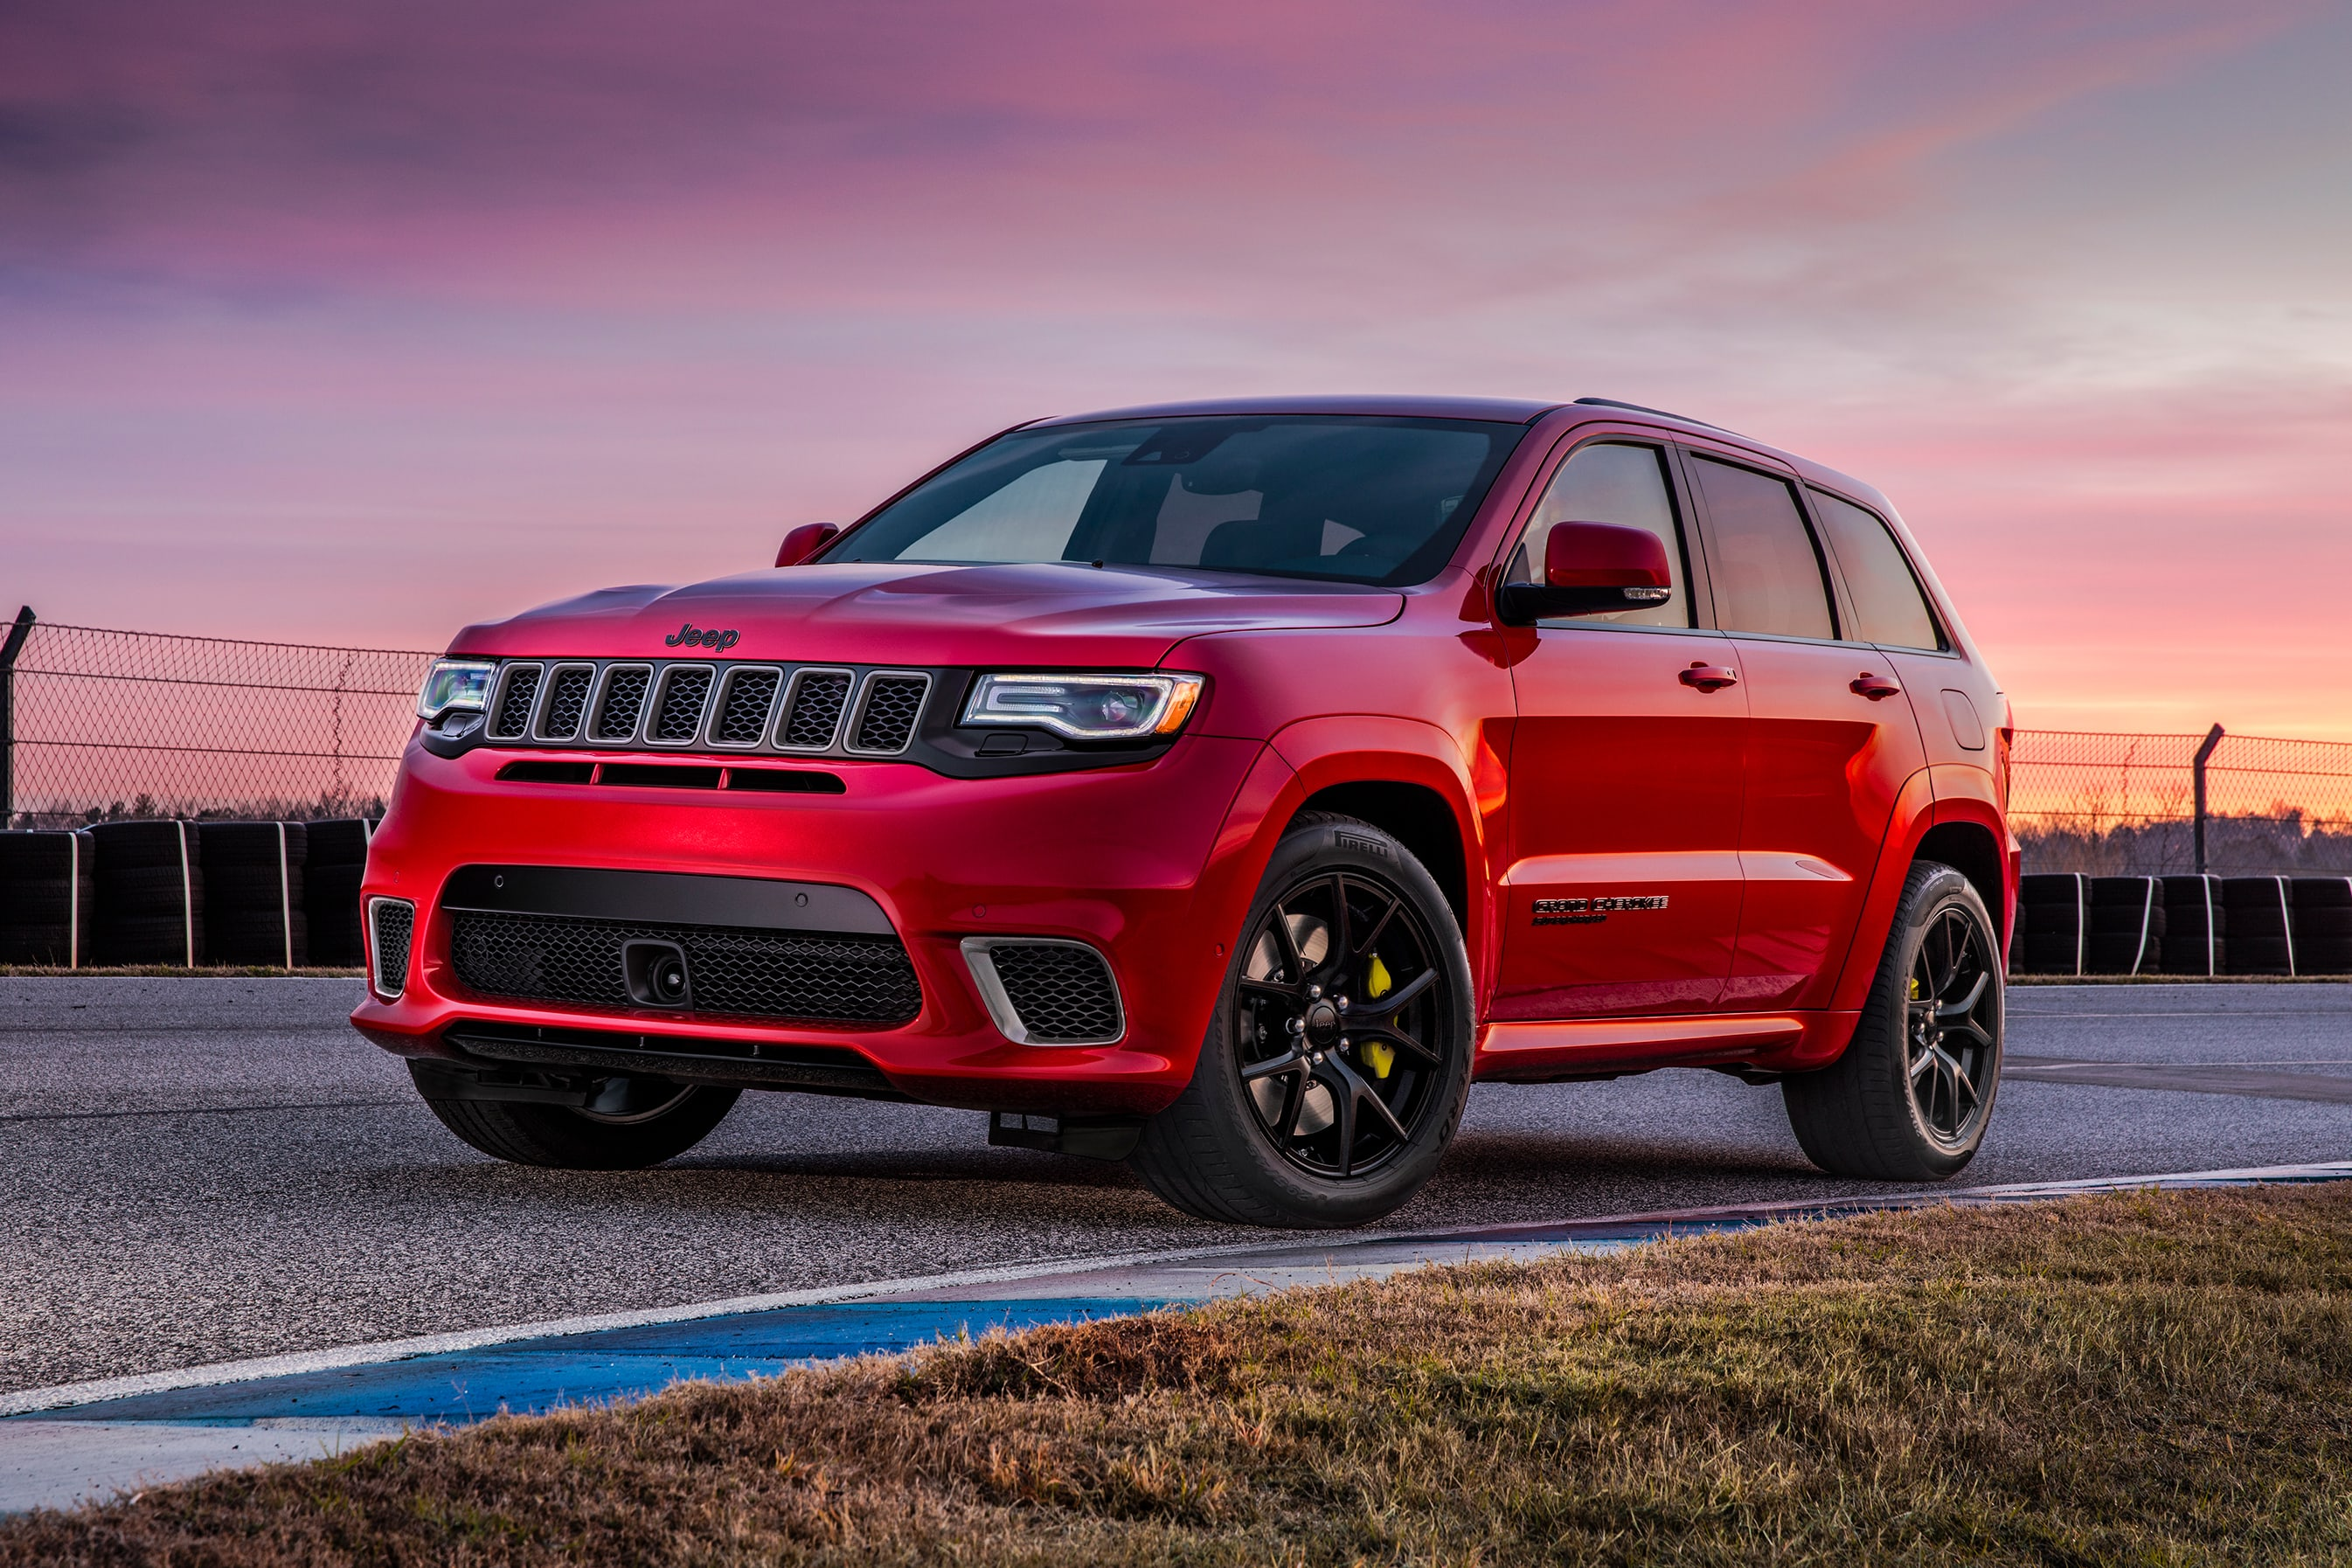 Jeep Grand Cherokee Trackhawk 2018 price and specification confirmed